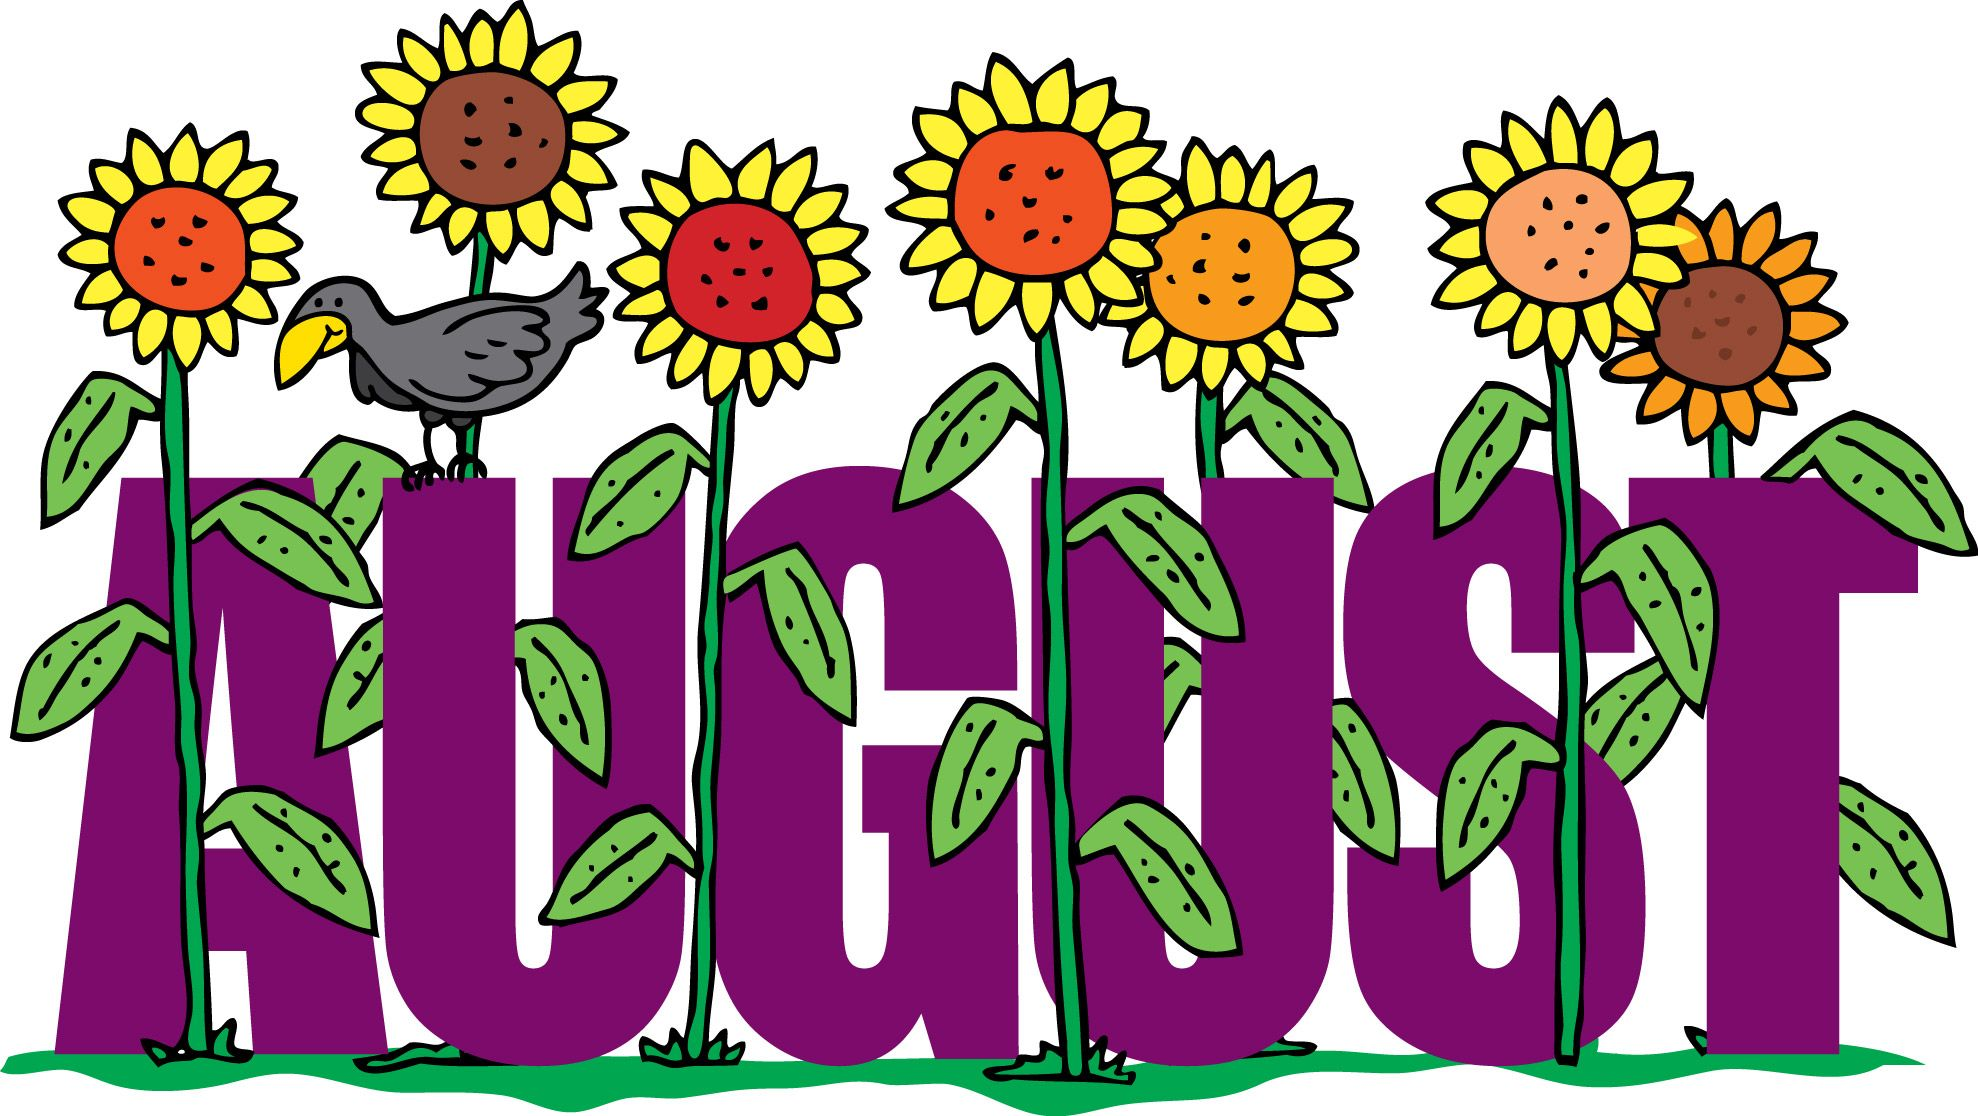 august floral clipart for screen saver [ 1978 x 1116 Pixel ]